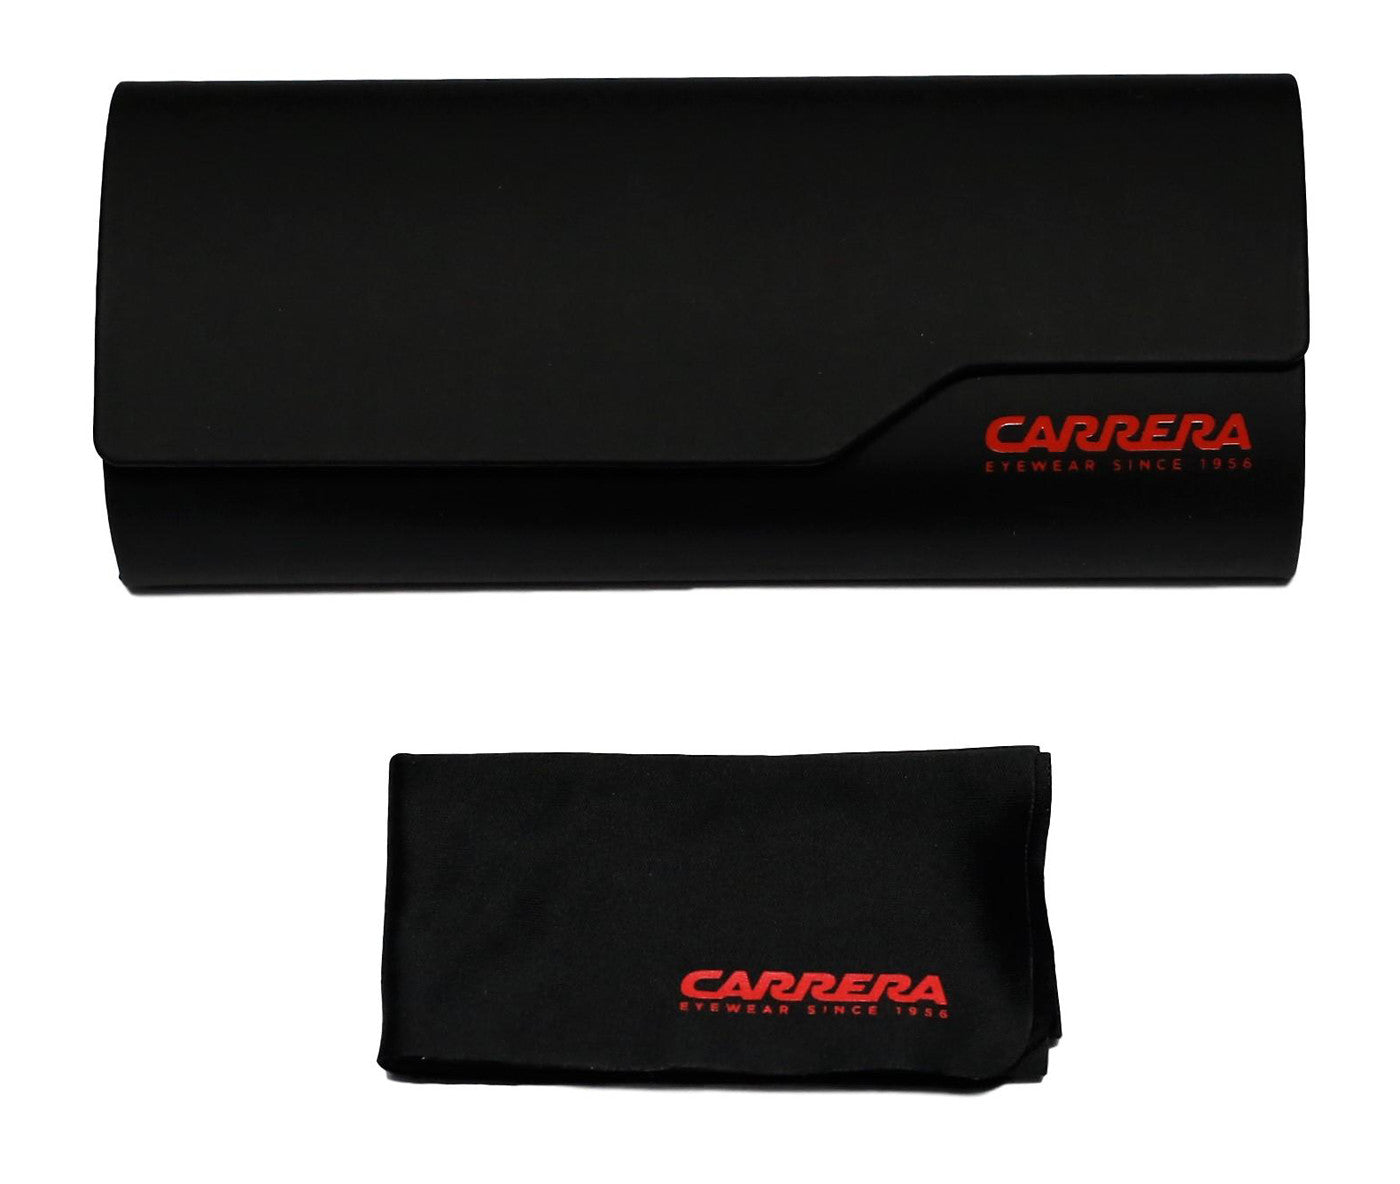 Carrera Eyewear Case